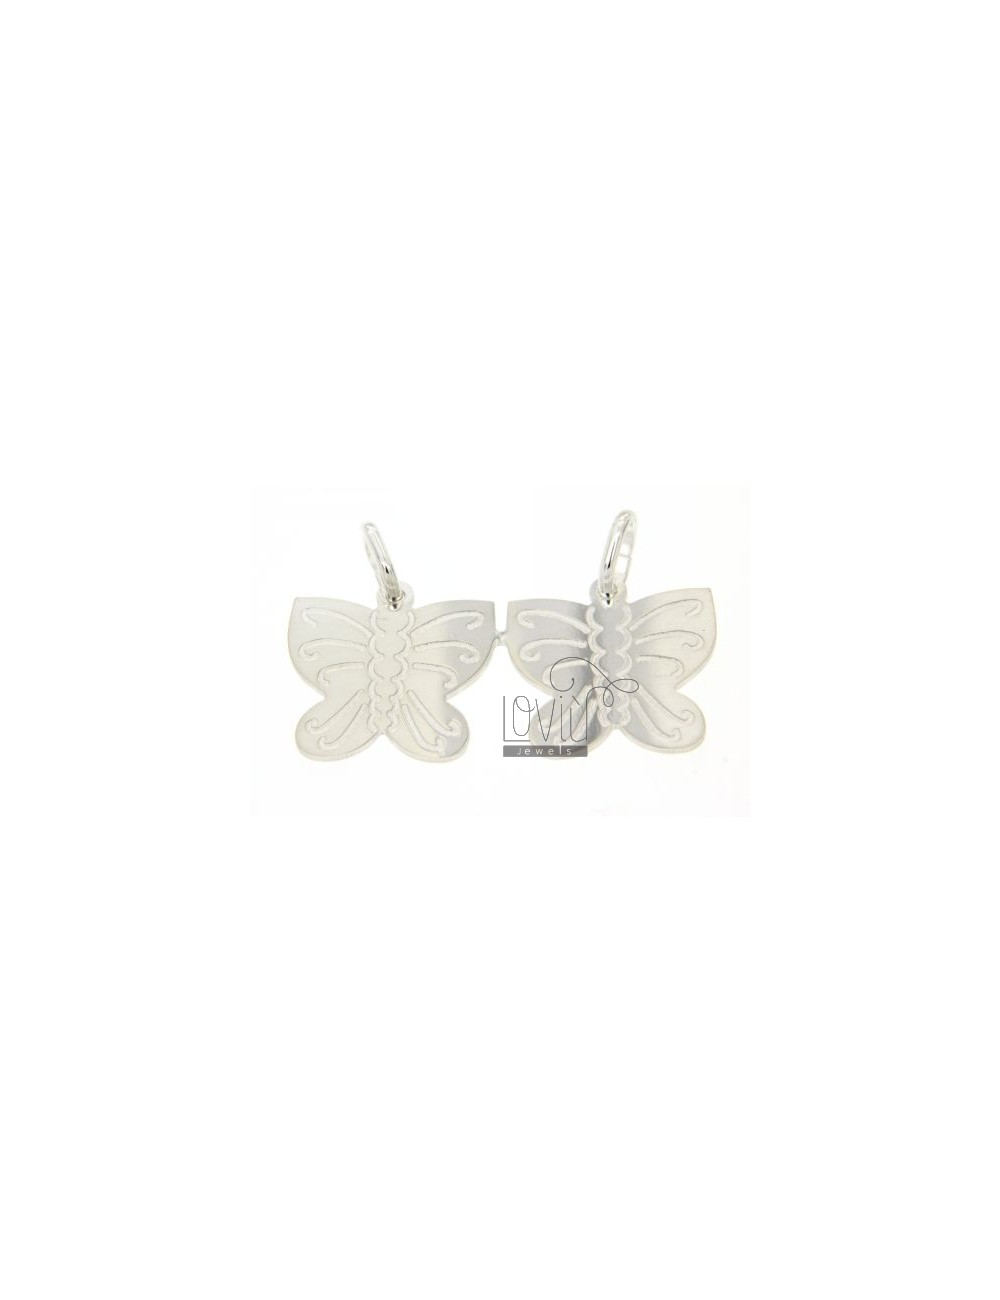 BUTTERFLIES IN SILVER CHARM DIVISIBLE 925 ‰